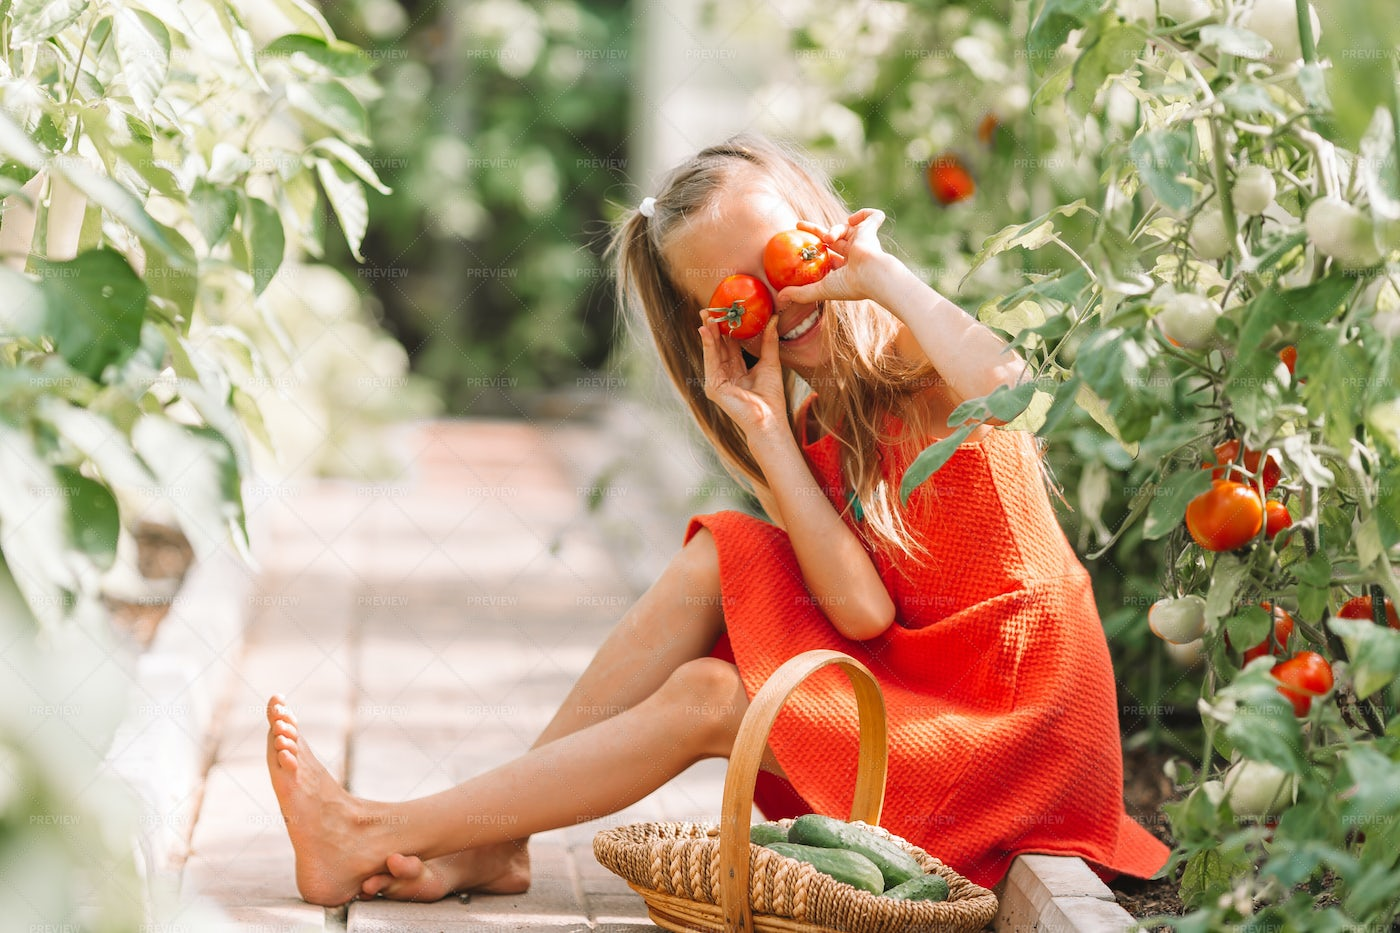 Silly Kid In Greenhouse Garden: Stock Photos